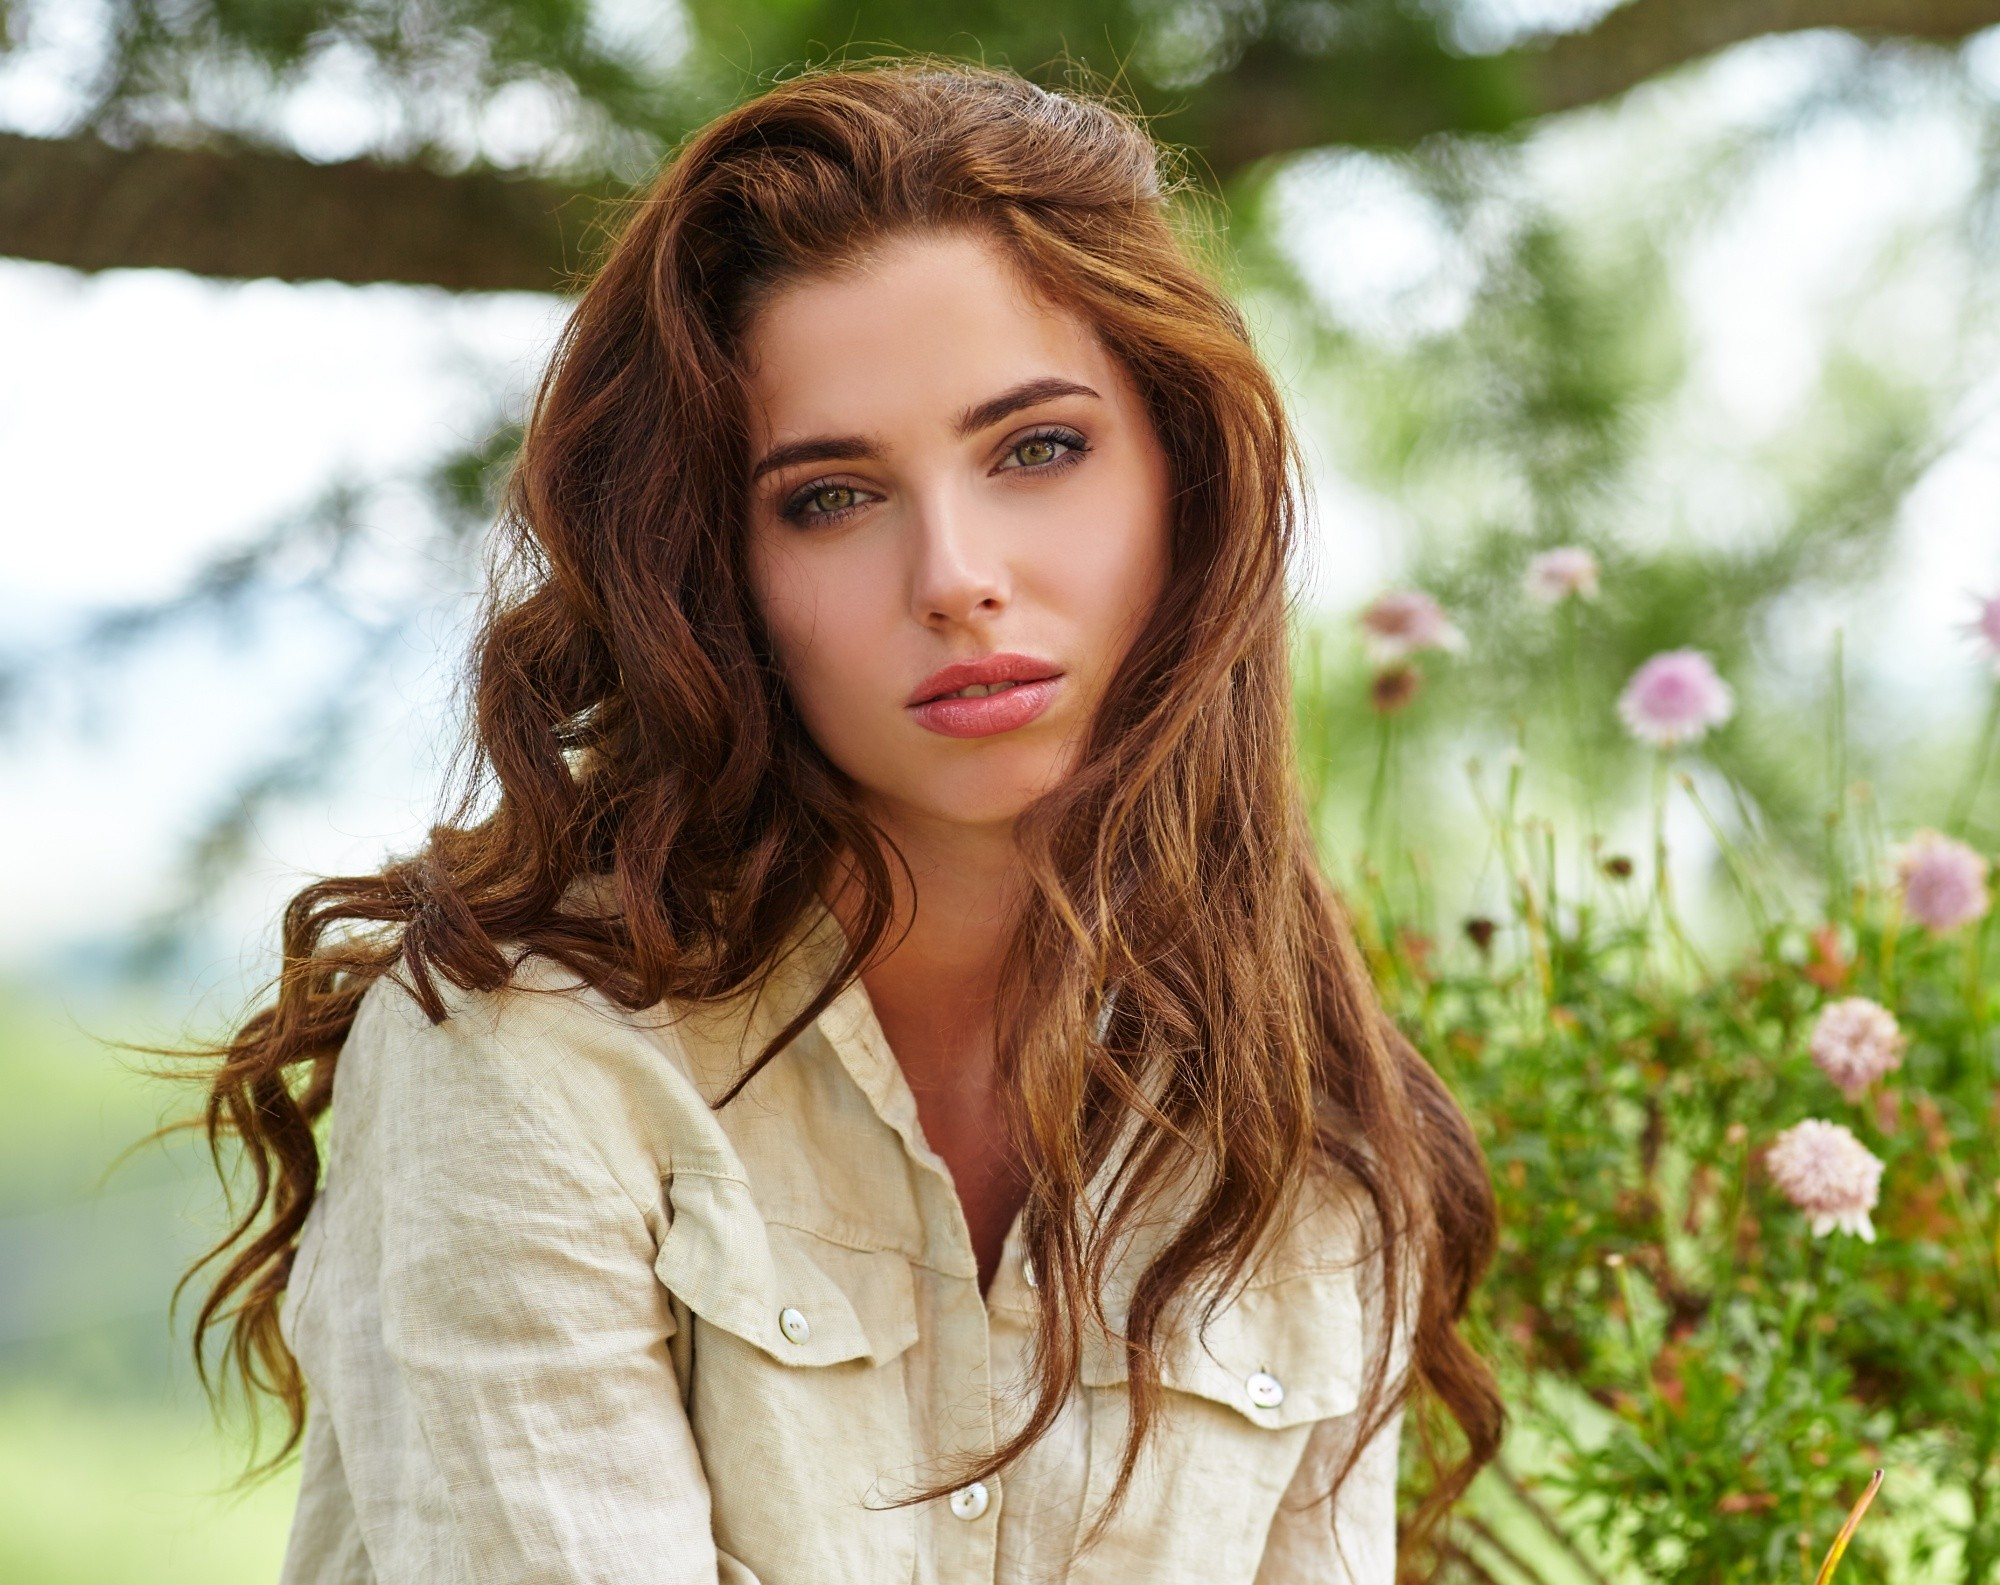 Caramel hair color: Woman with long brown hair wearing a white blouse outdoors